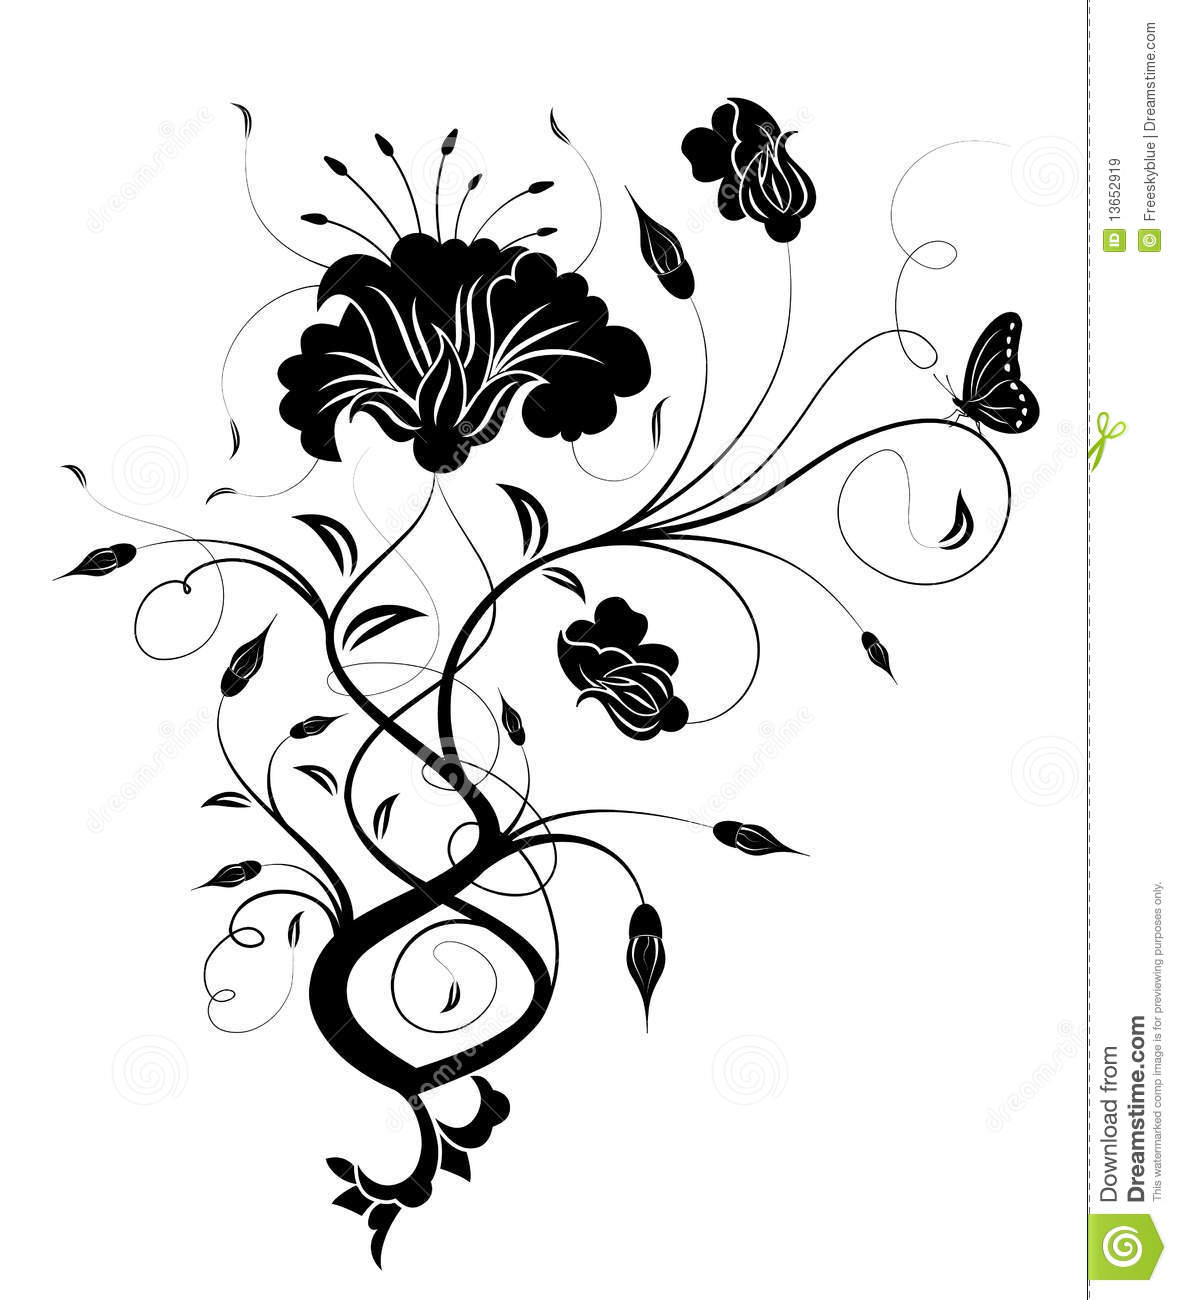 Black Flower And Vines Pattern Royalty Free Stock Image: Black Flower Silhouette Royalty Free Stock Images